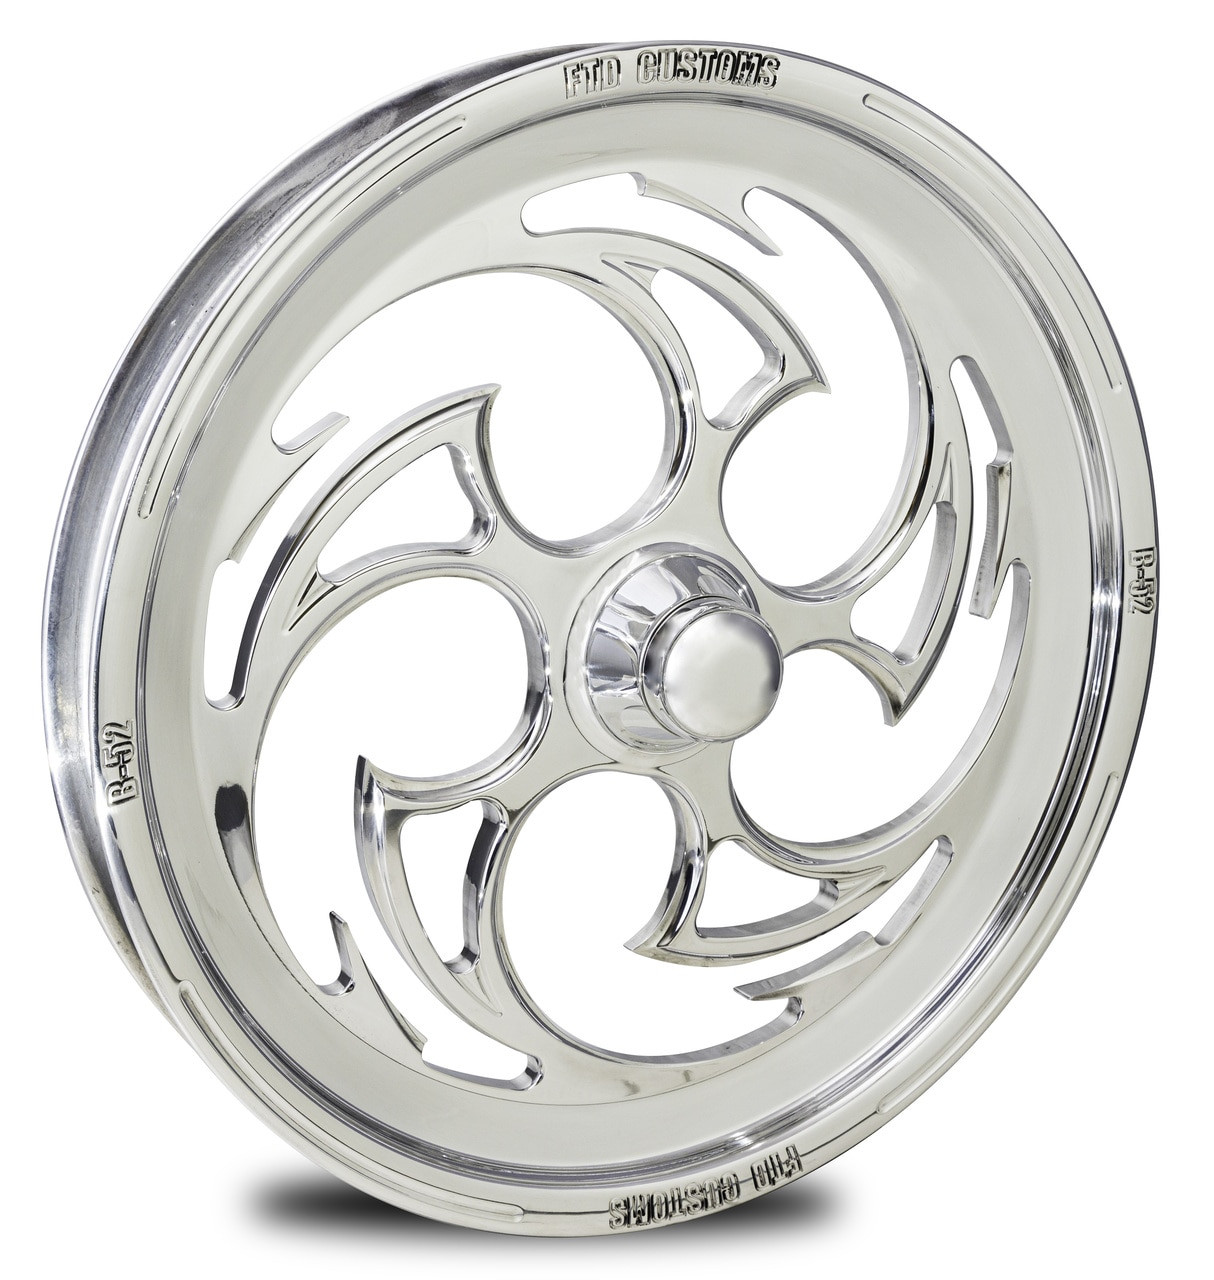 B52 Dragster Front Wheels